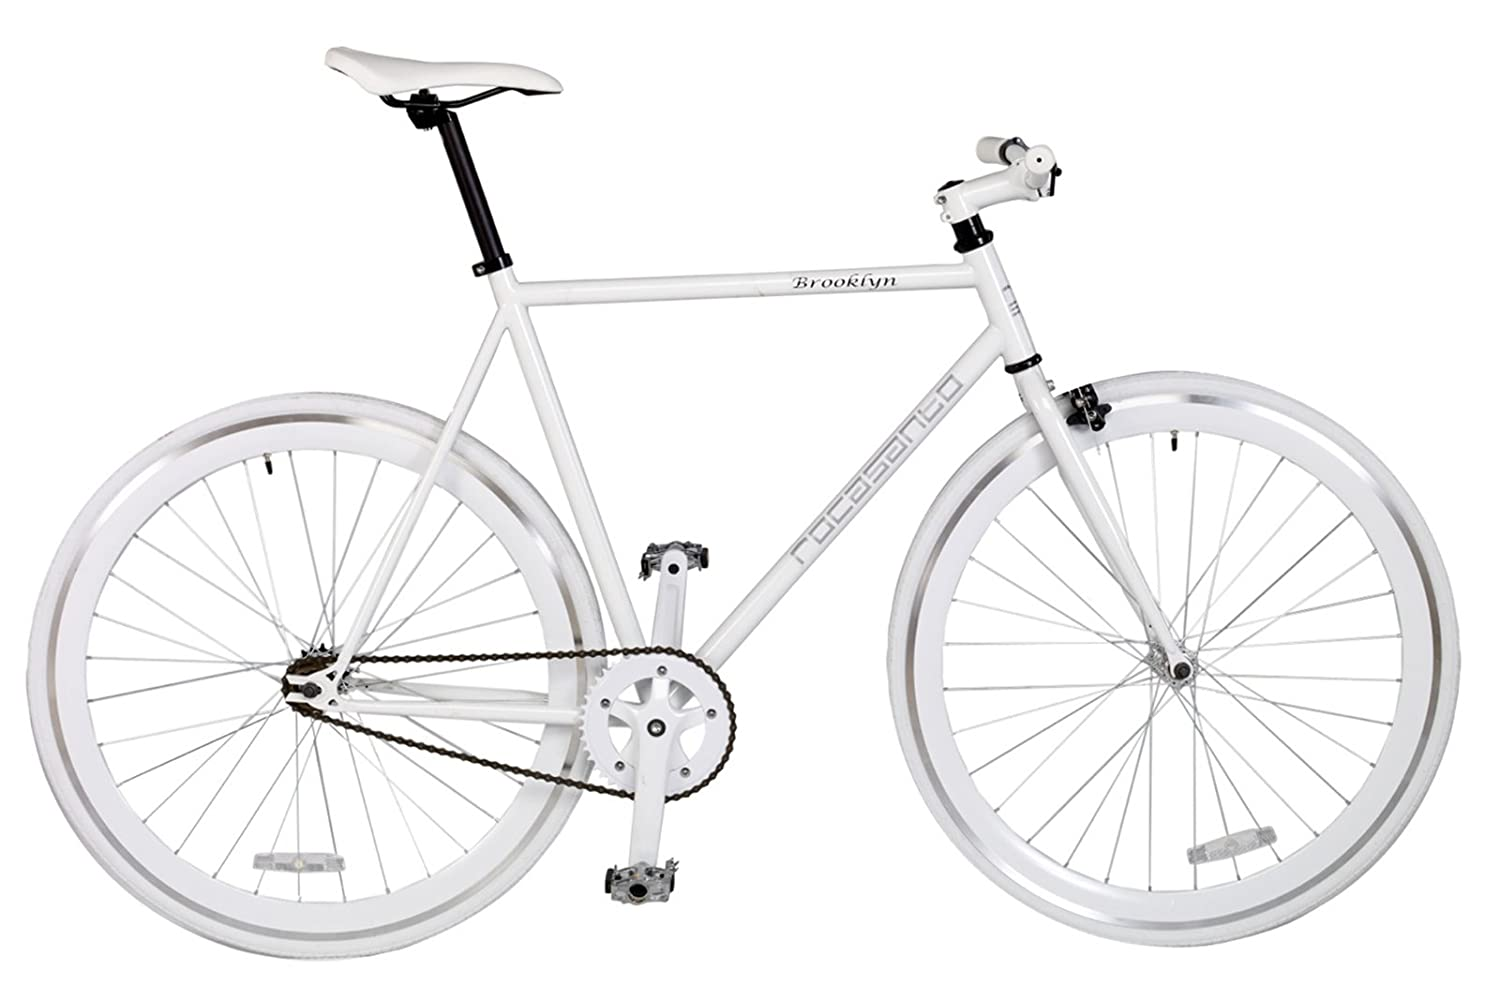 Rocasanto Bike - Bicicleta fixie v, tamaño 51, color blanco ...